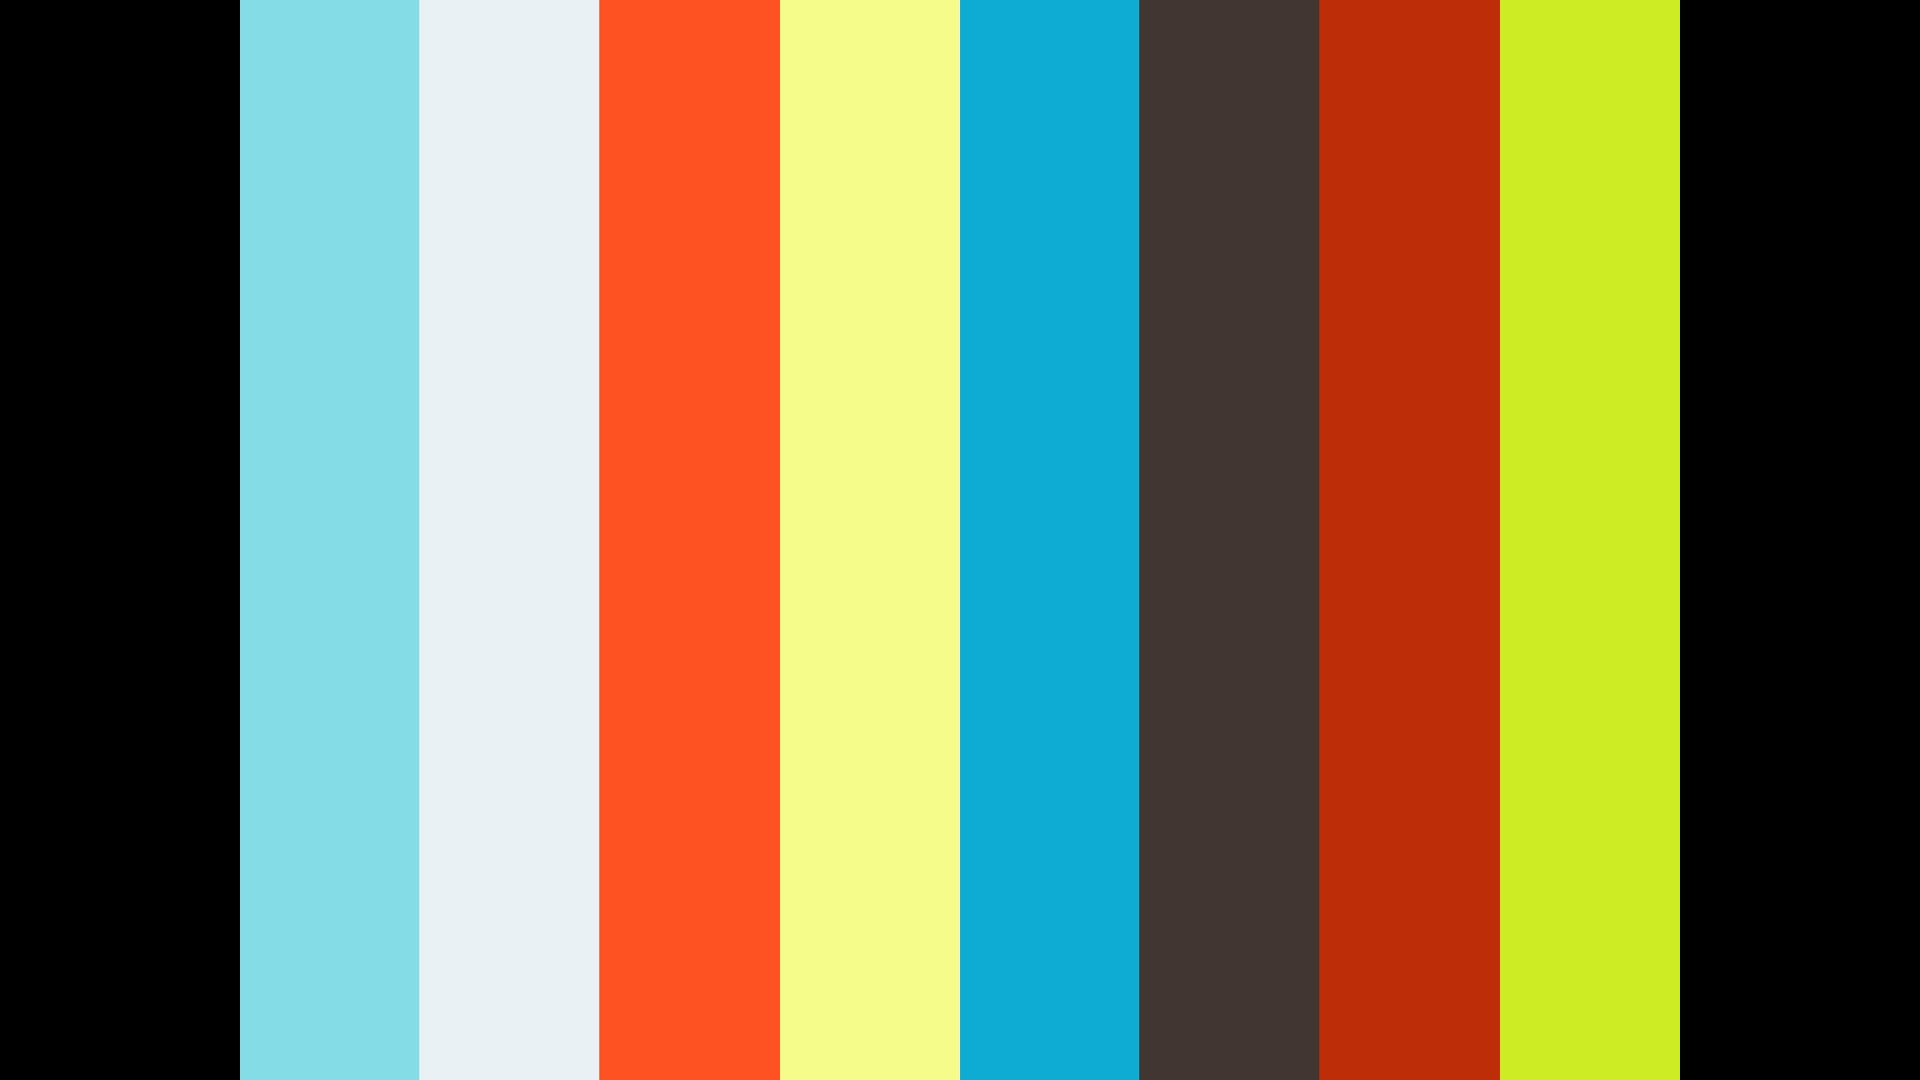 Together 2025